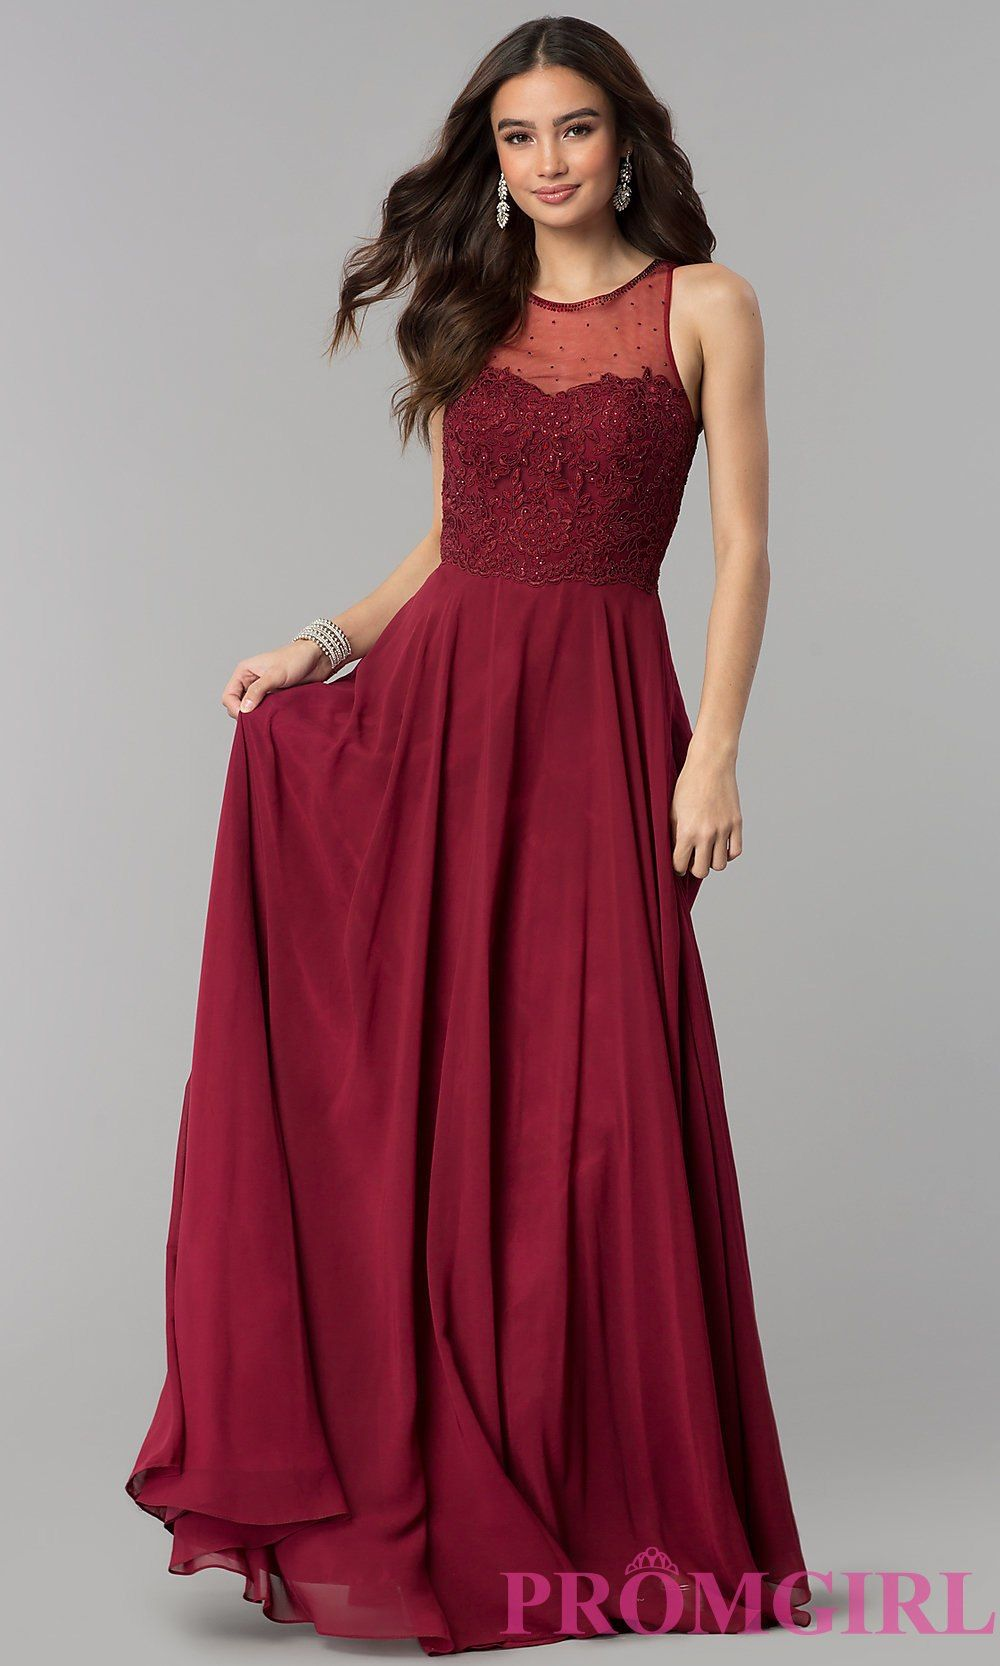 Embroidered Long Tulle Prom Dress with Corset Back